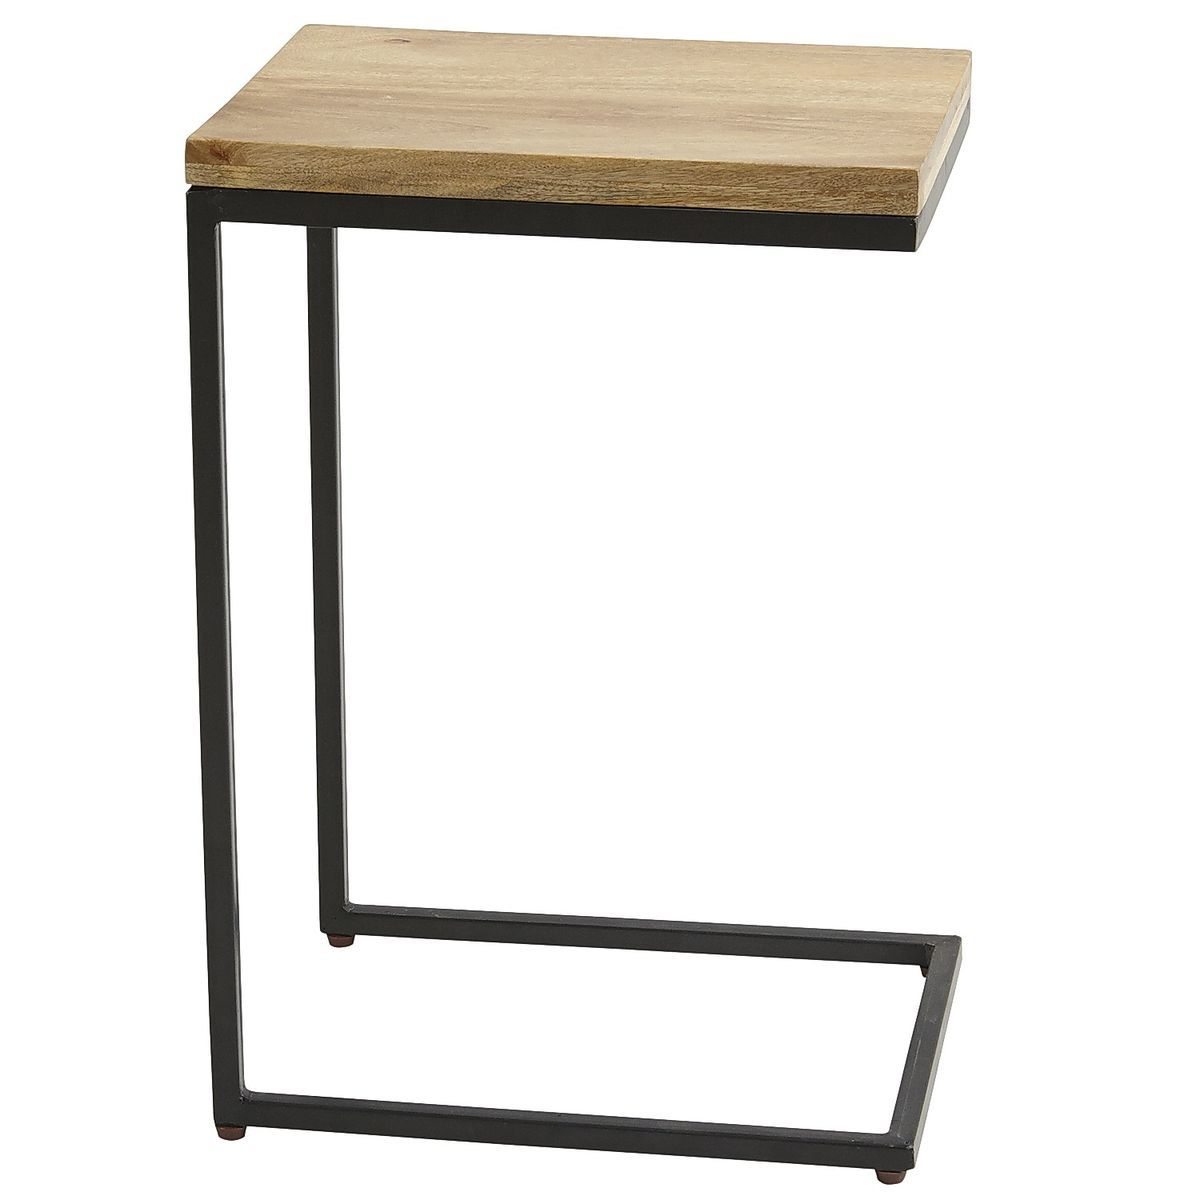 Takat Natural Mango Wood C Table C Table Coffee Table Living Room Furniture